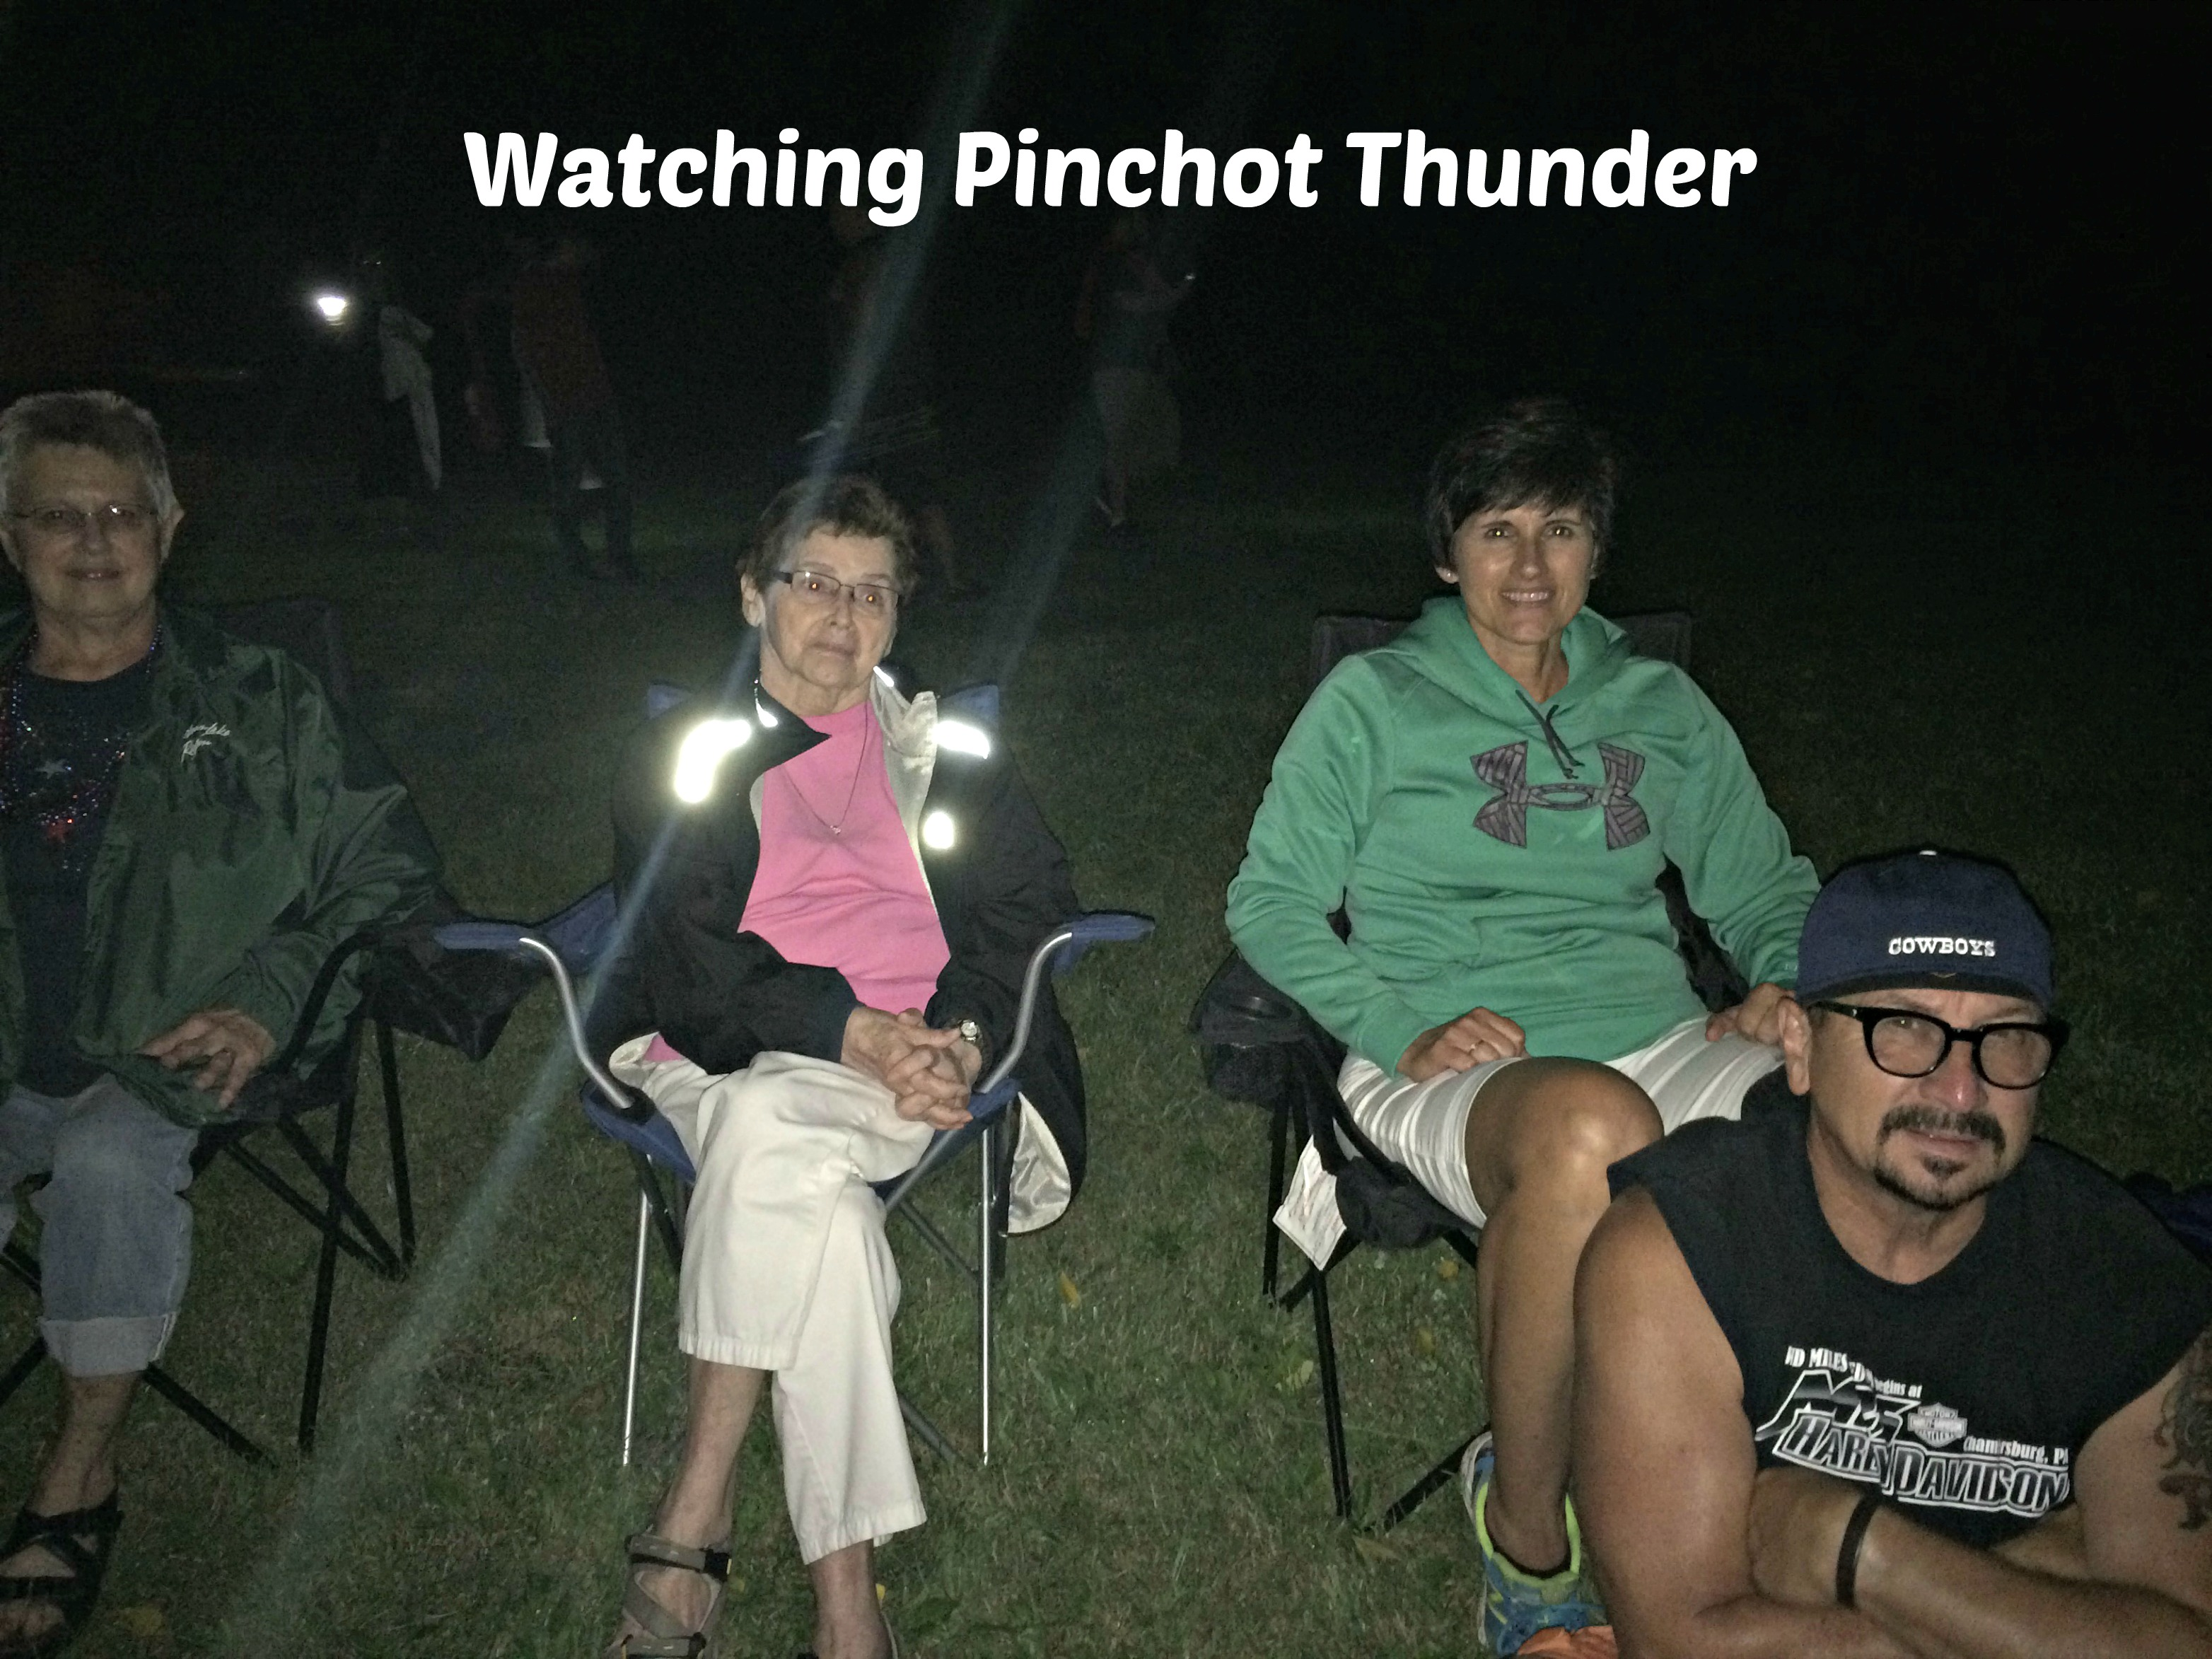 Watching Pinchot Thunder